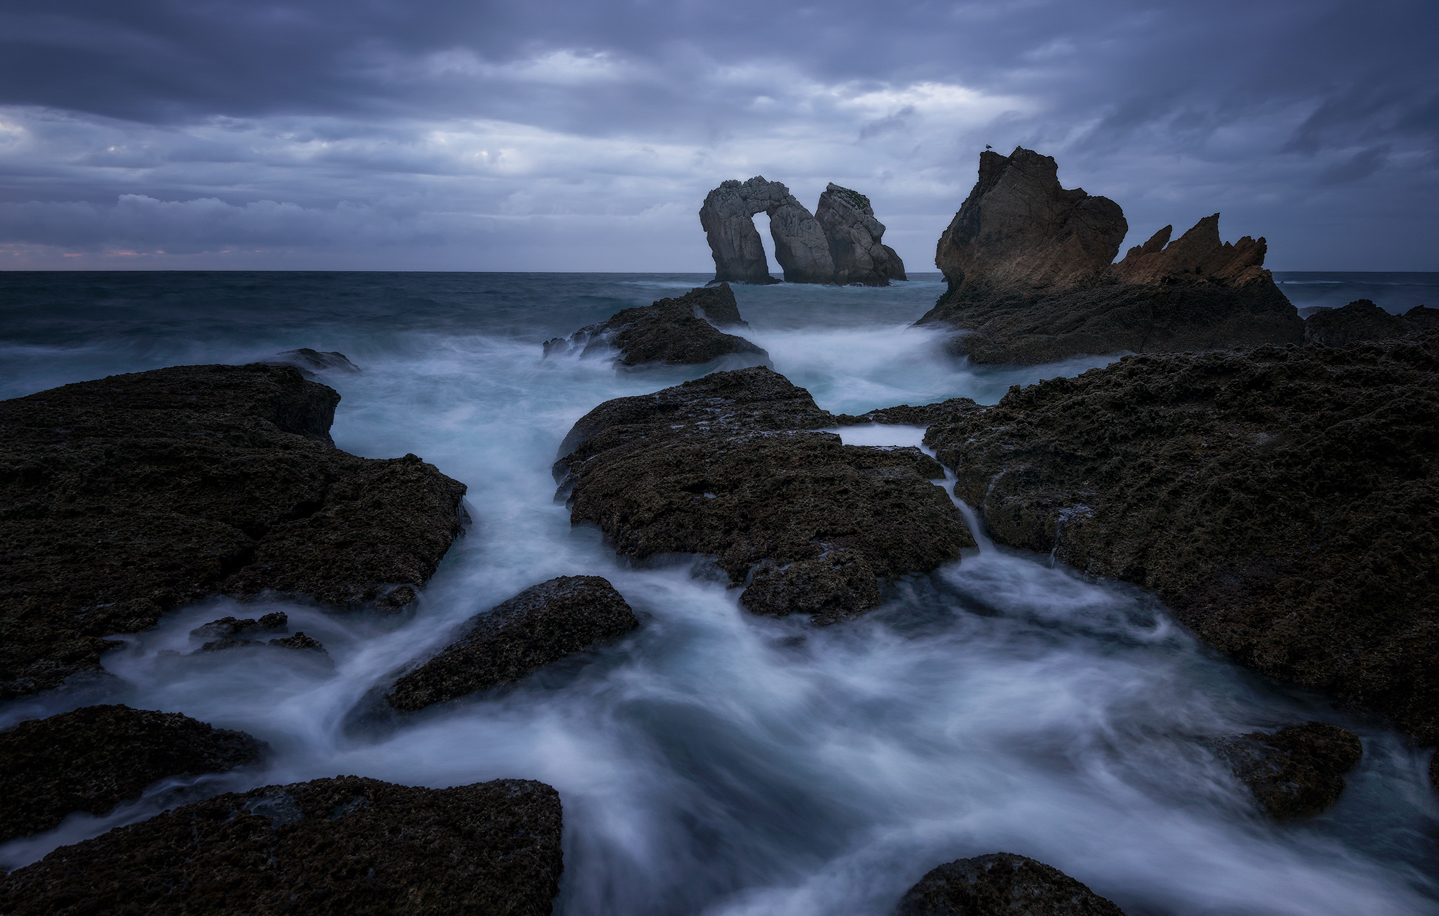 Seascape with rocks and waves